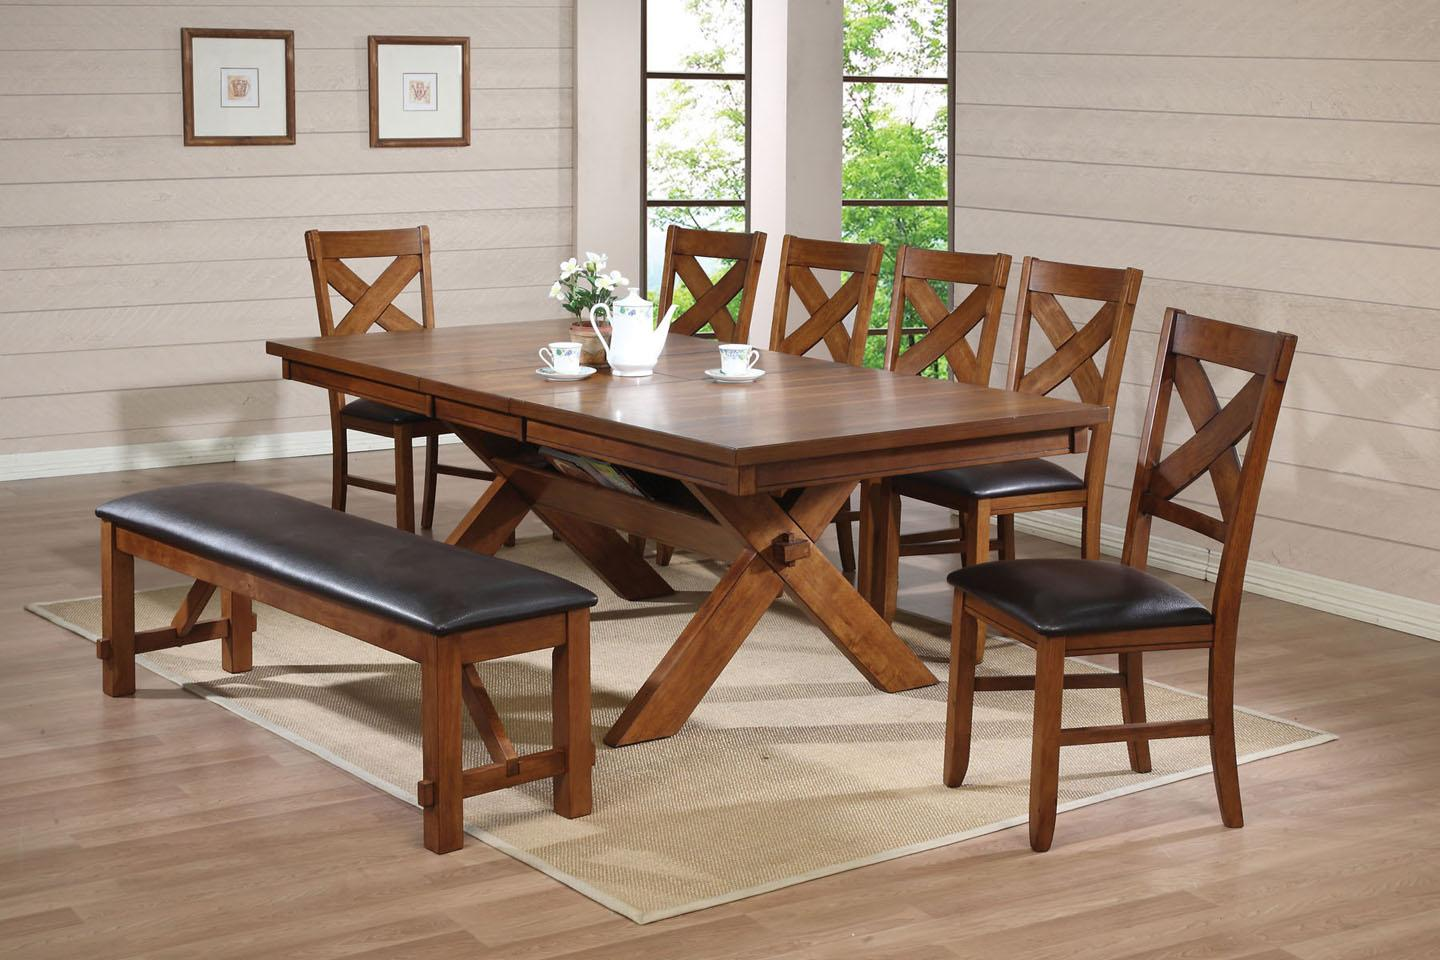 Dining Room Set With Chairs And Bench